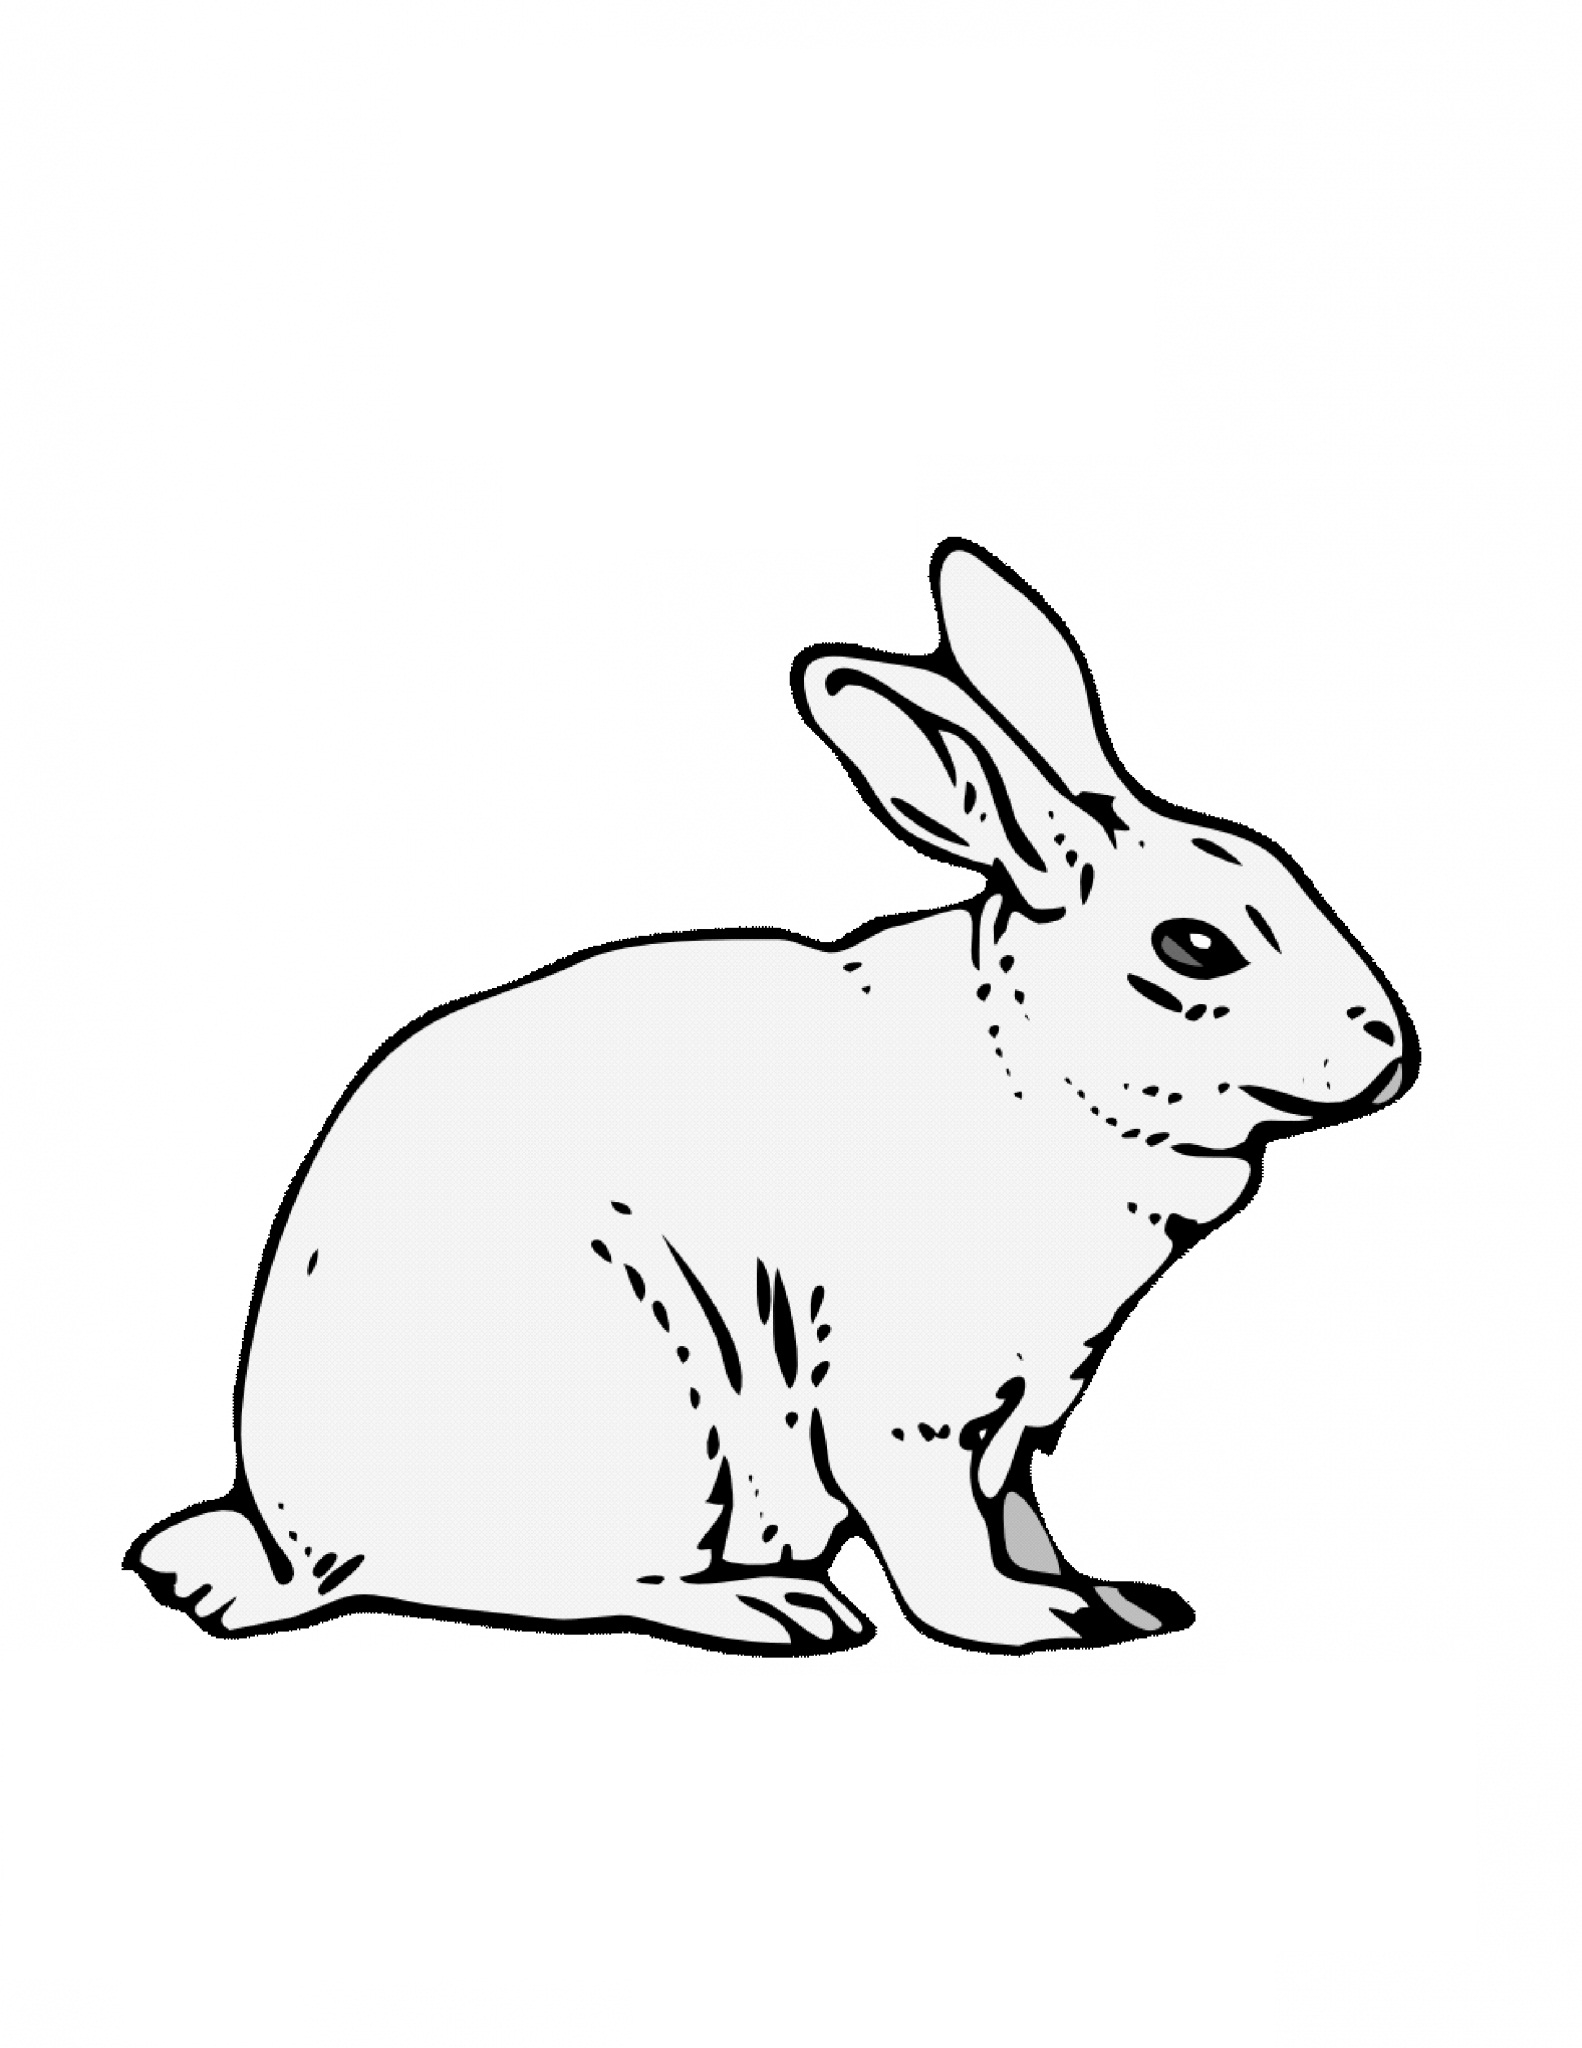 print bunny coloring pages rabbit to color for children rabbit kids coloring pages pages bunny print coloring